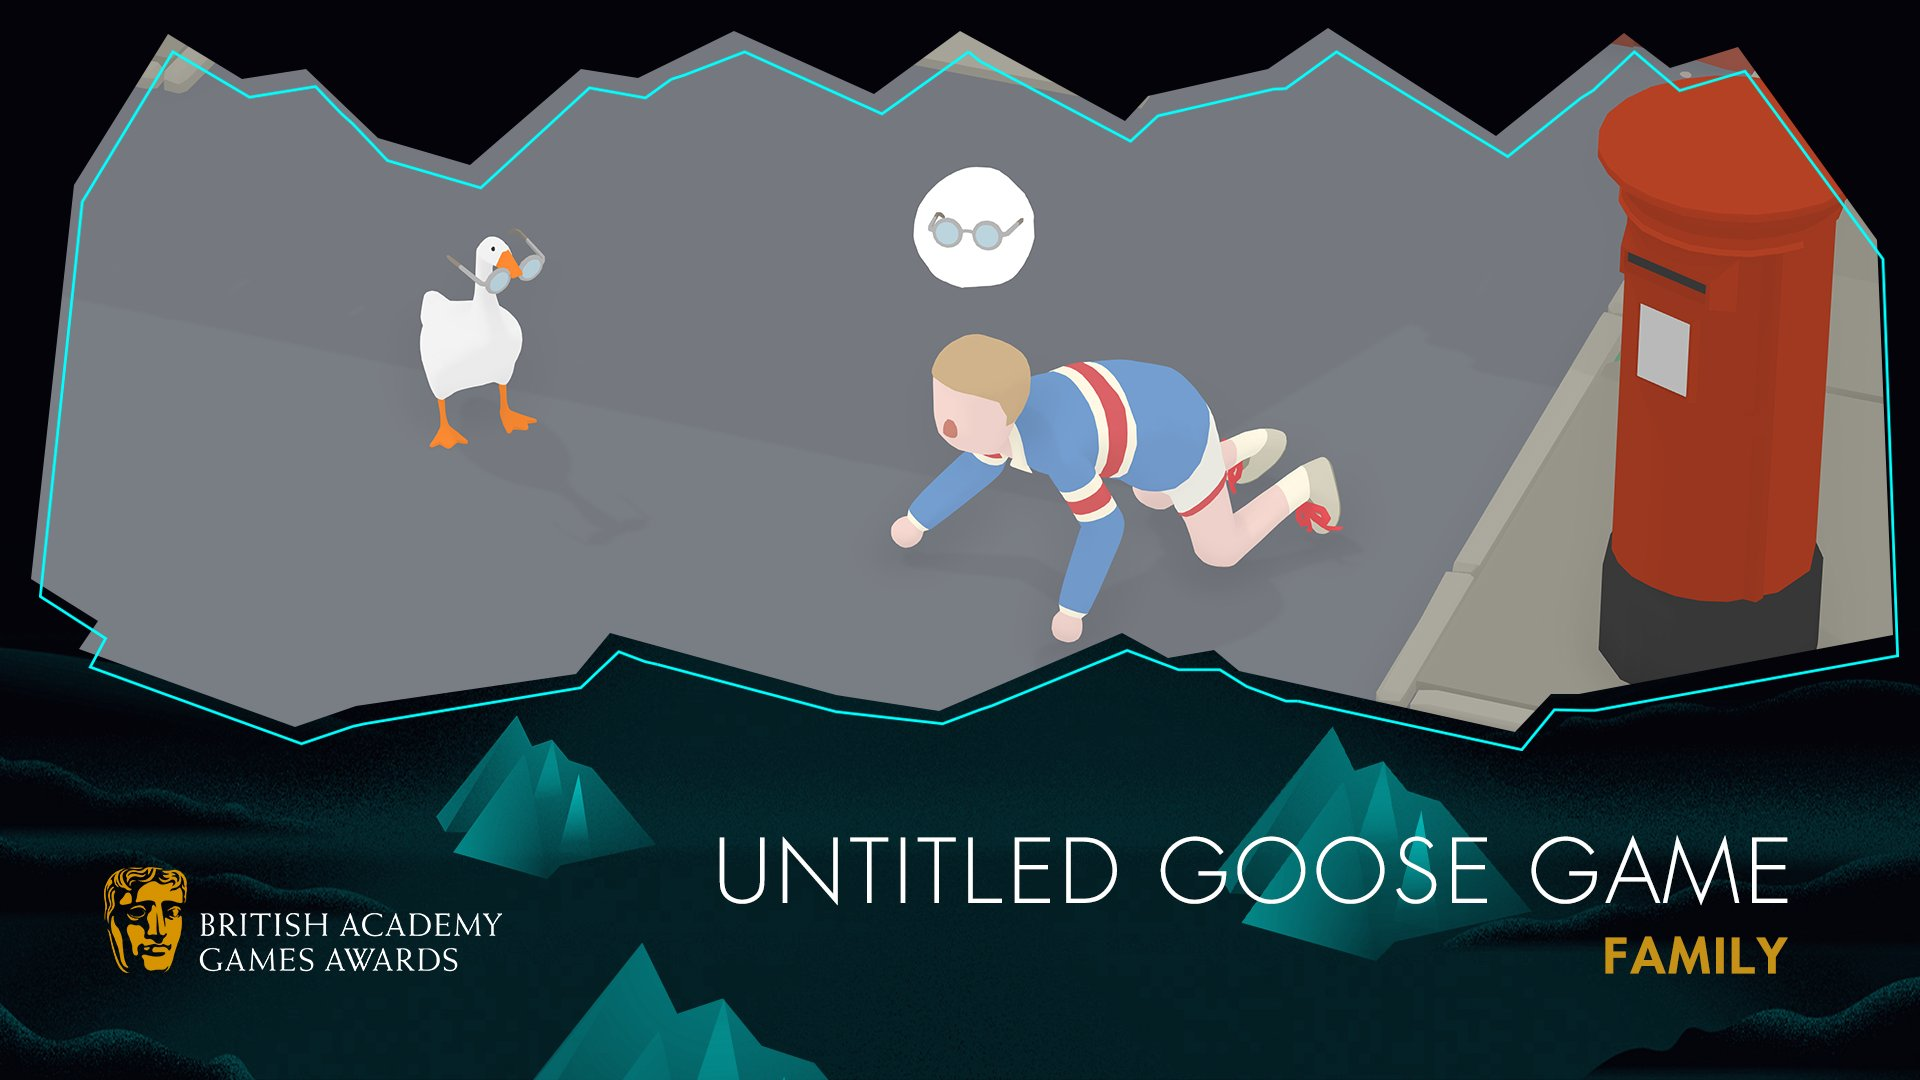 Untitle Goose Game BAFTA GAMES AWARDS 2020